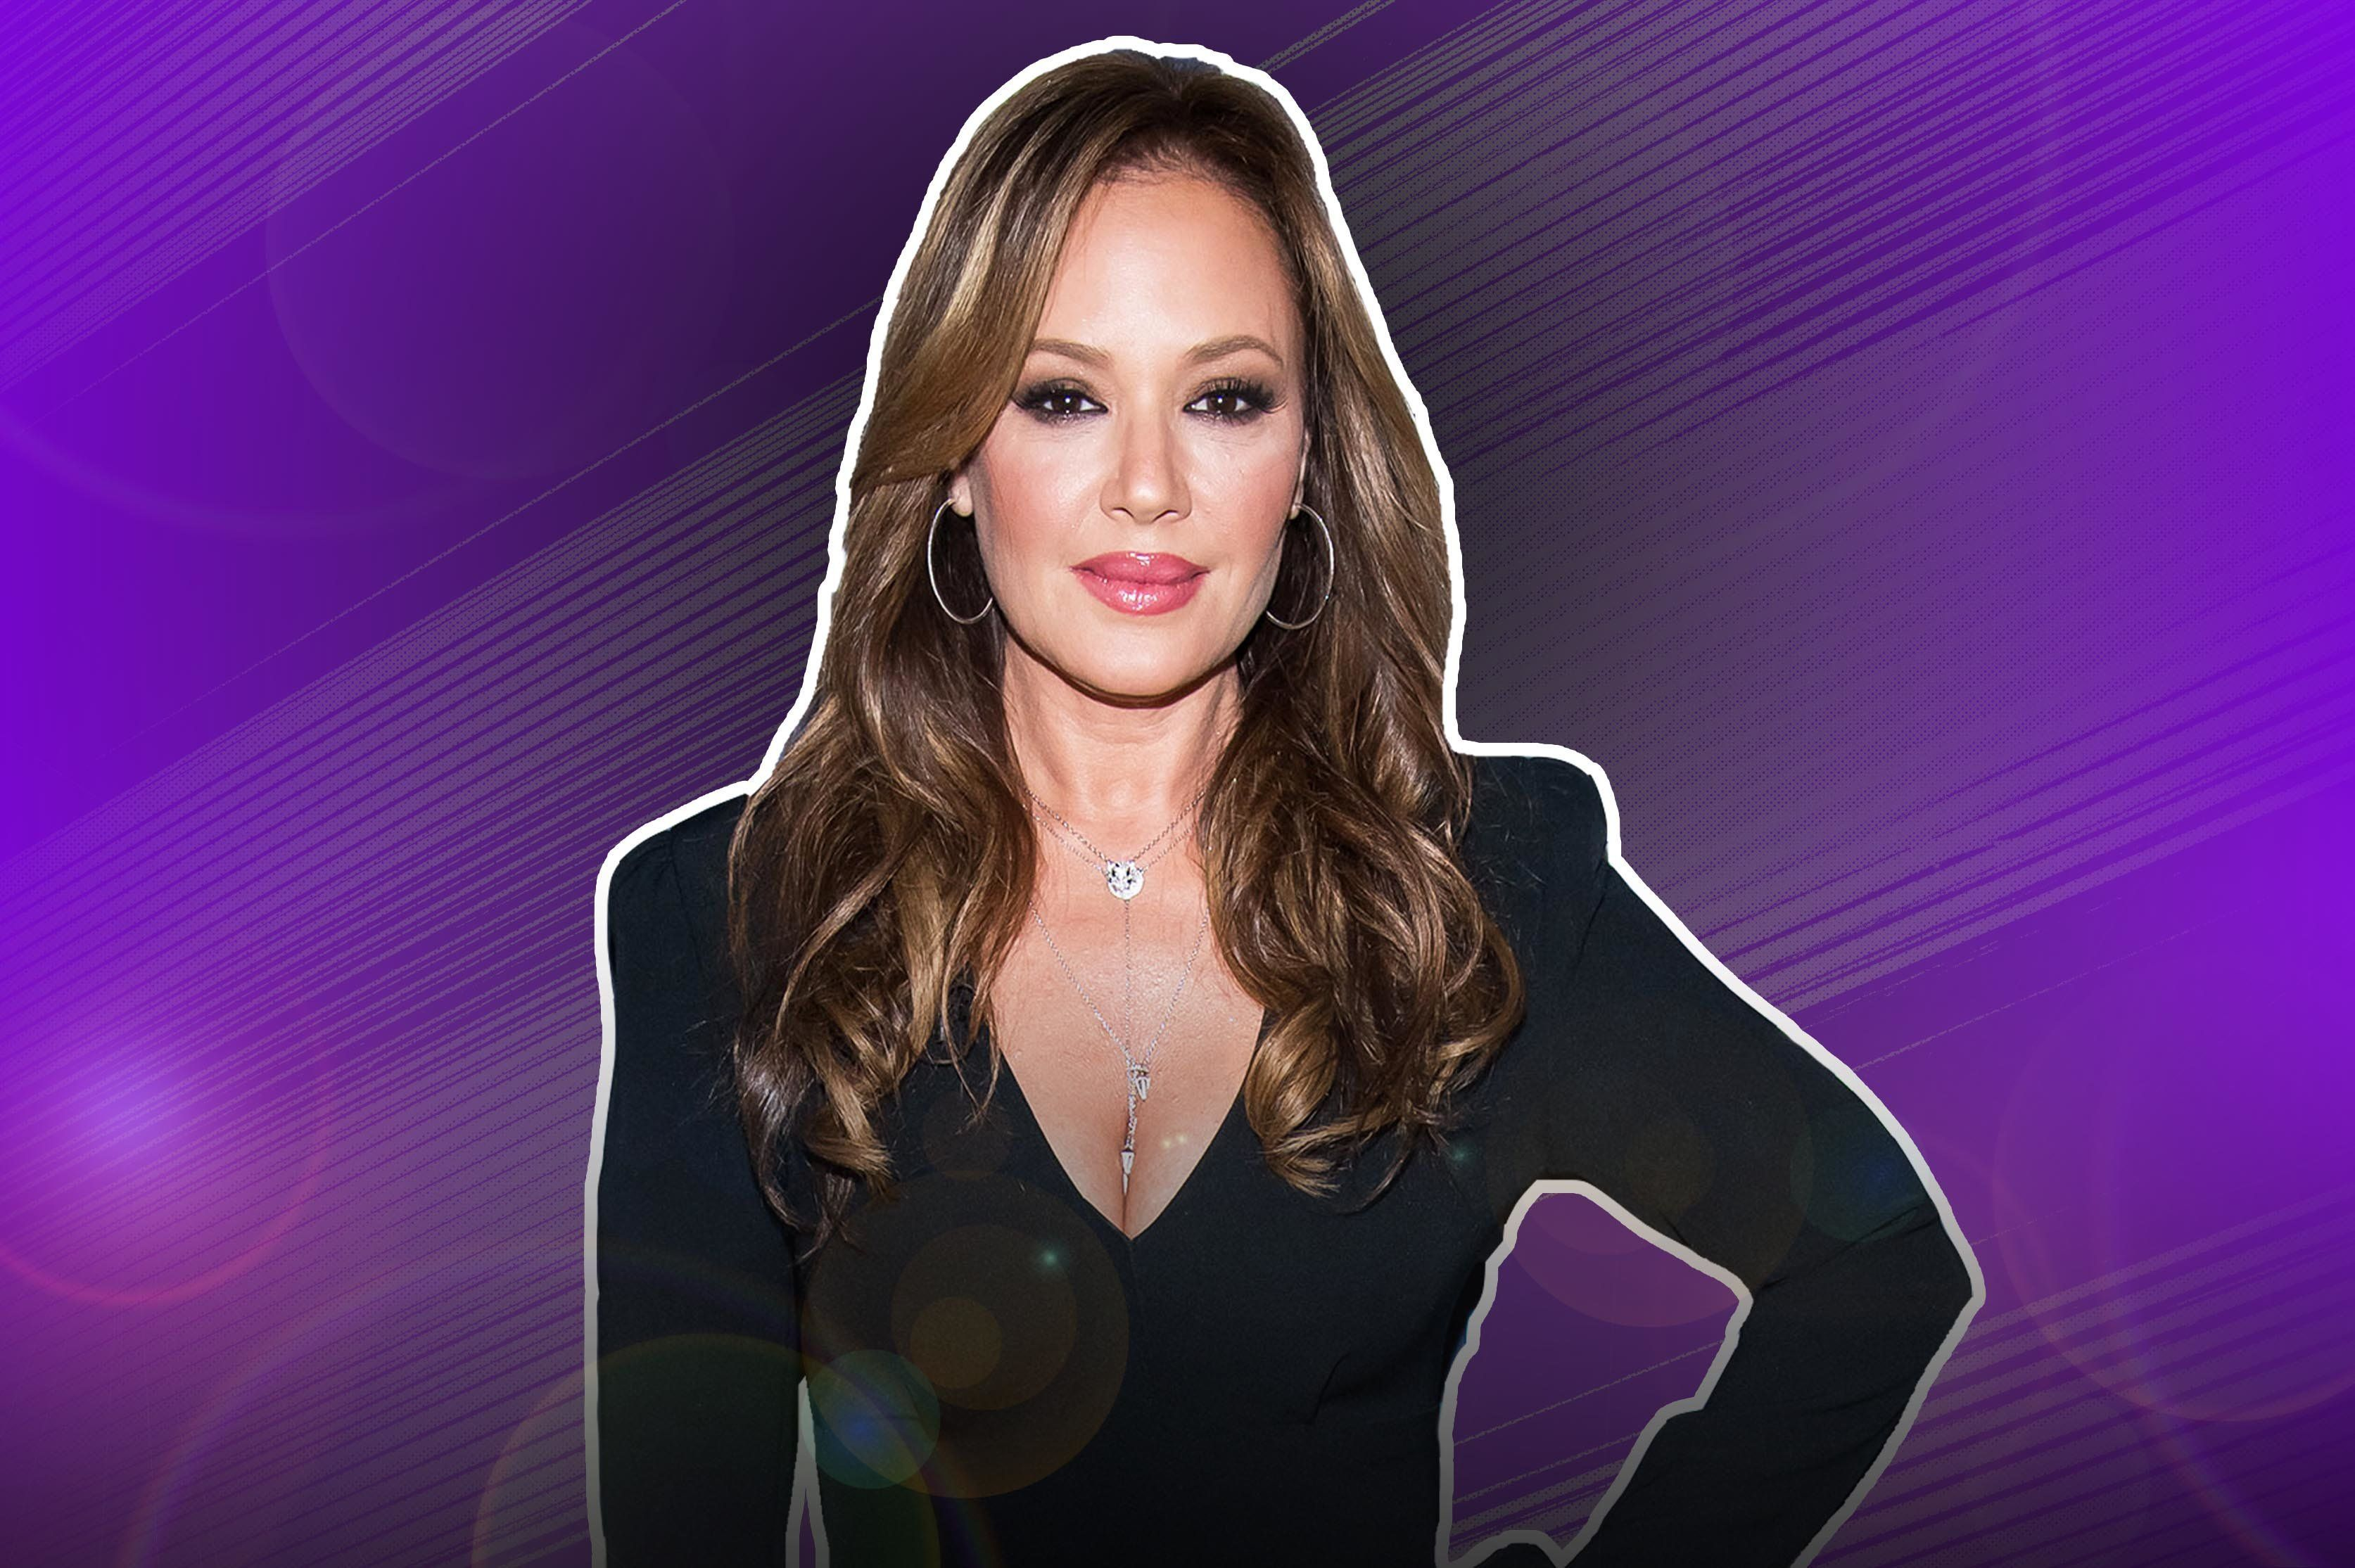 Leah Remini's Fight After Scientology Is For Everyday Women Forgotten By Me